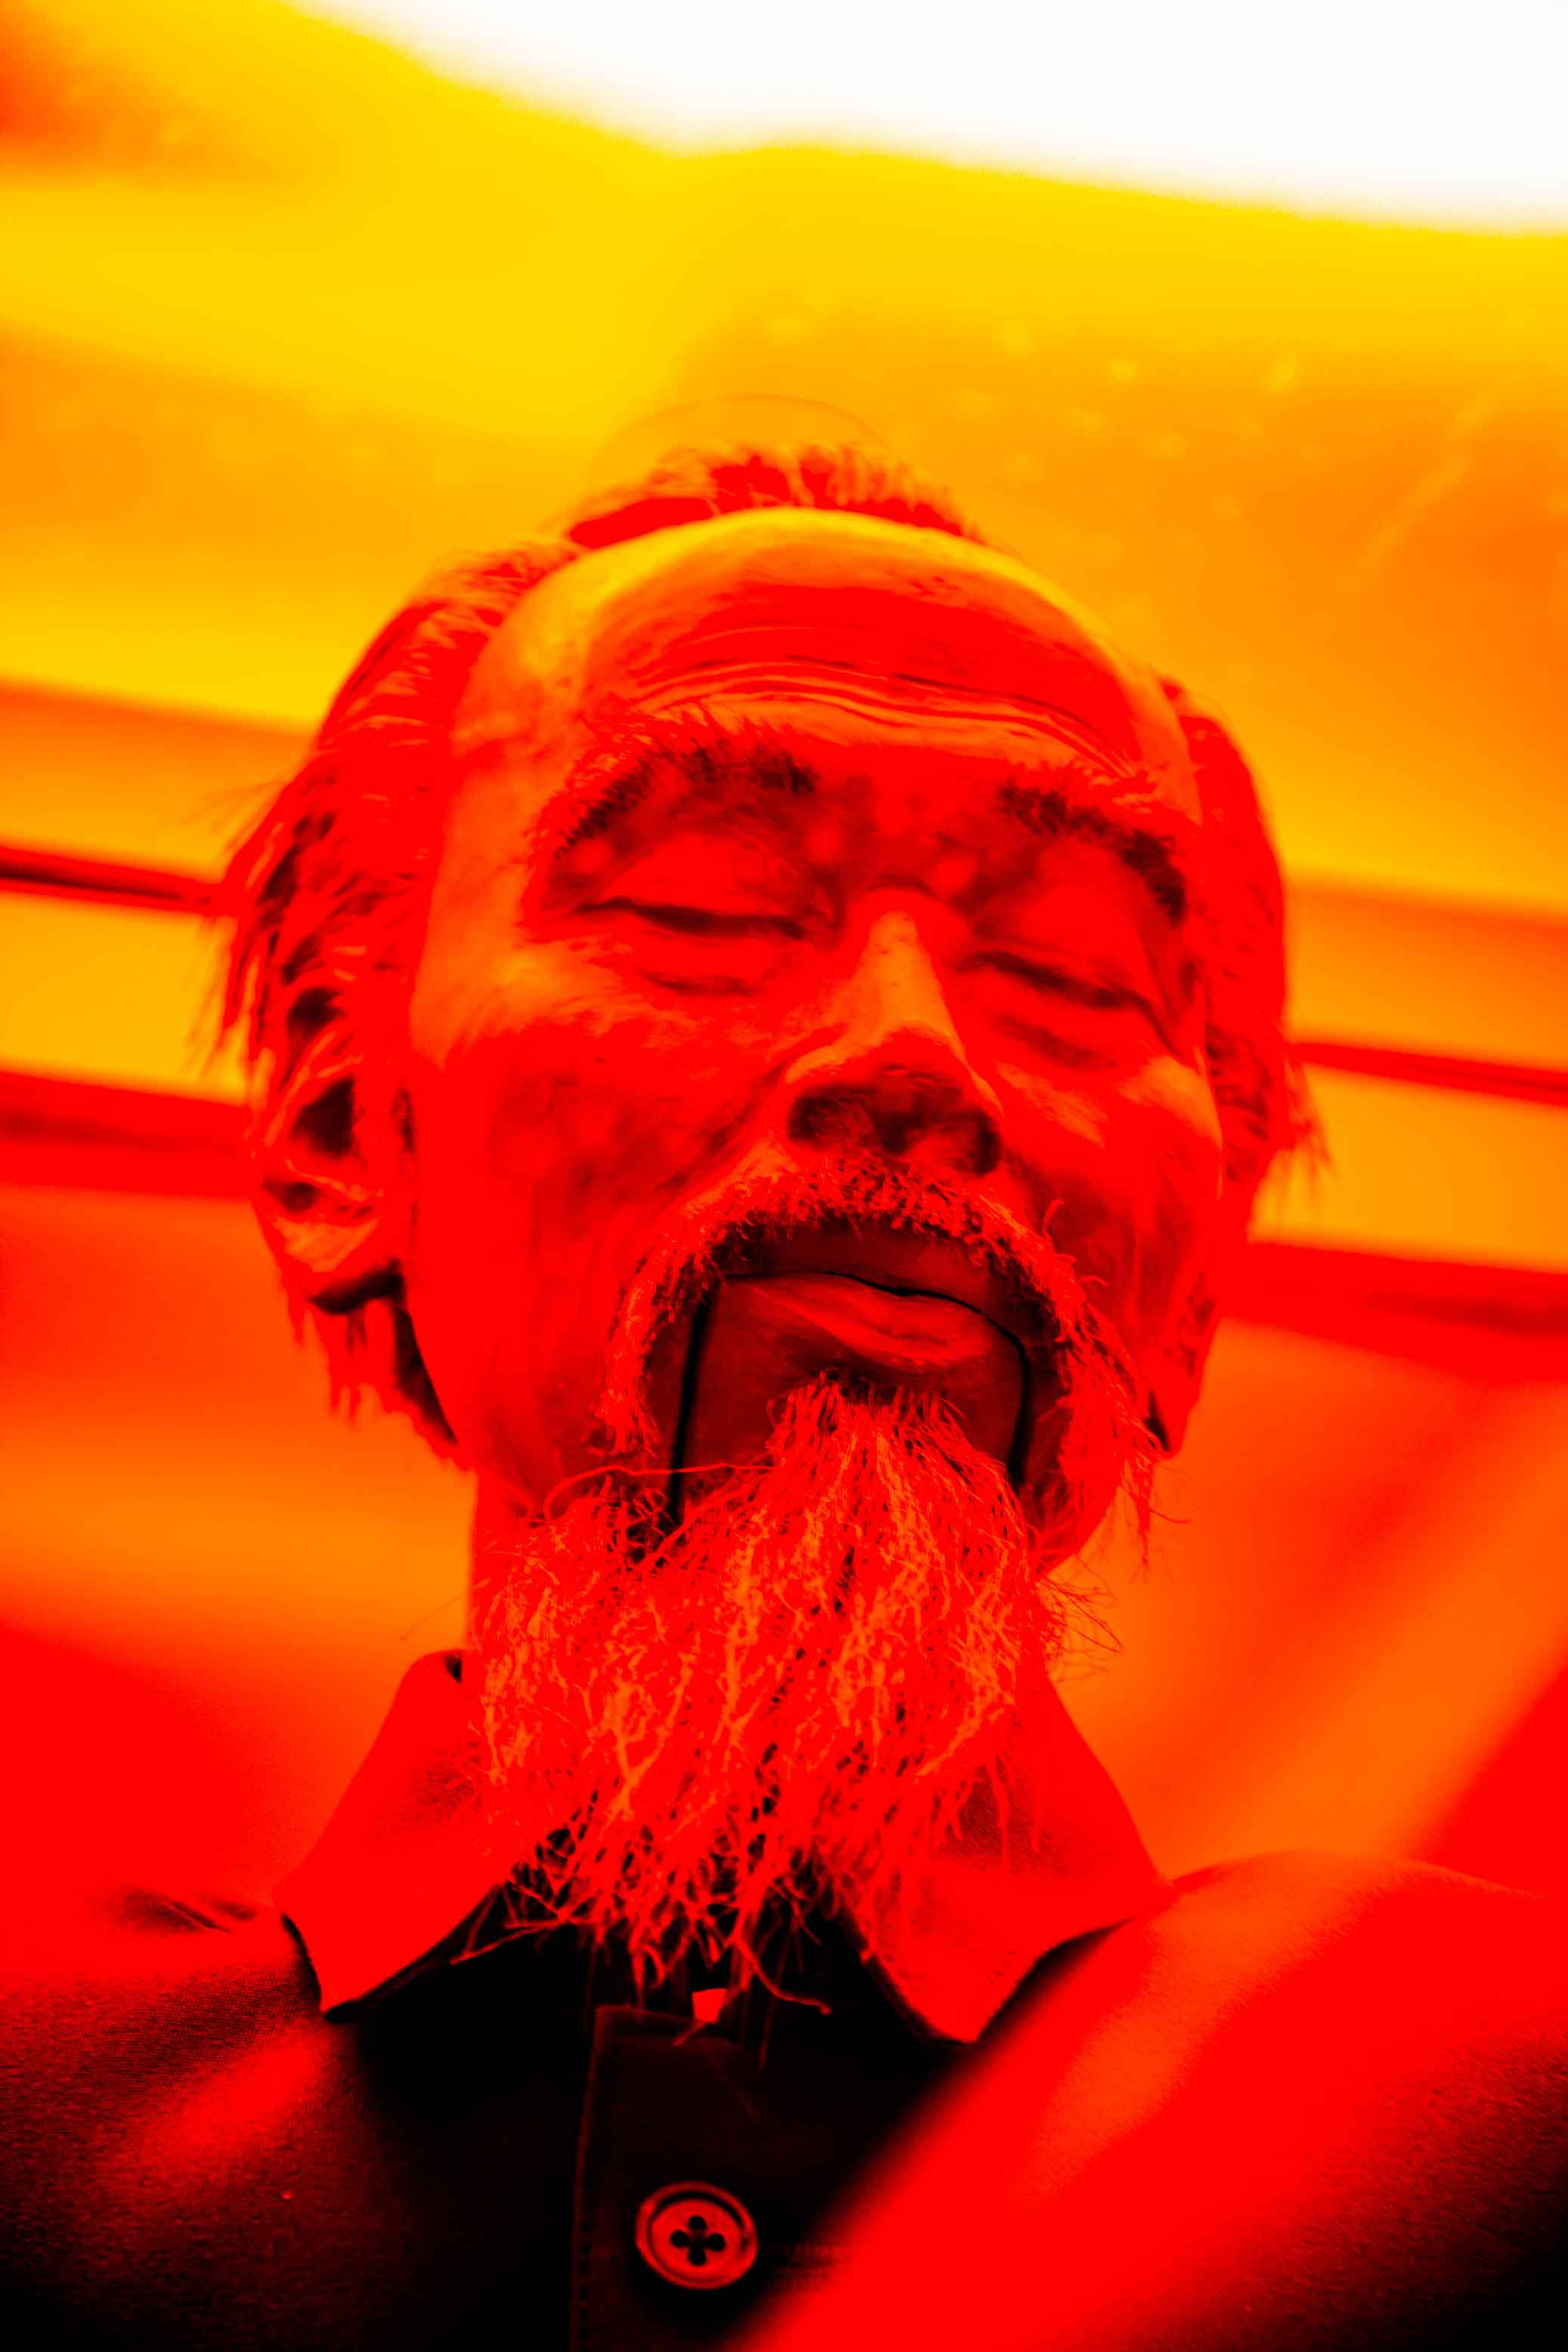 Red Ho Chi Minh